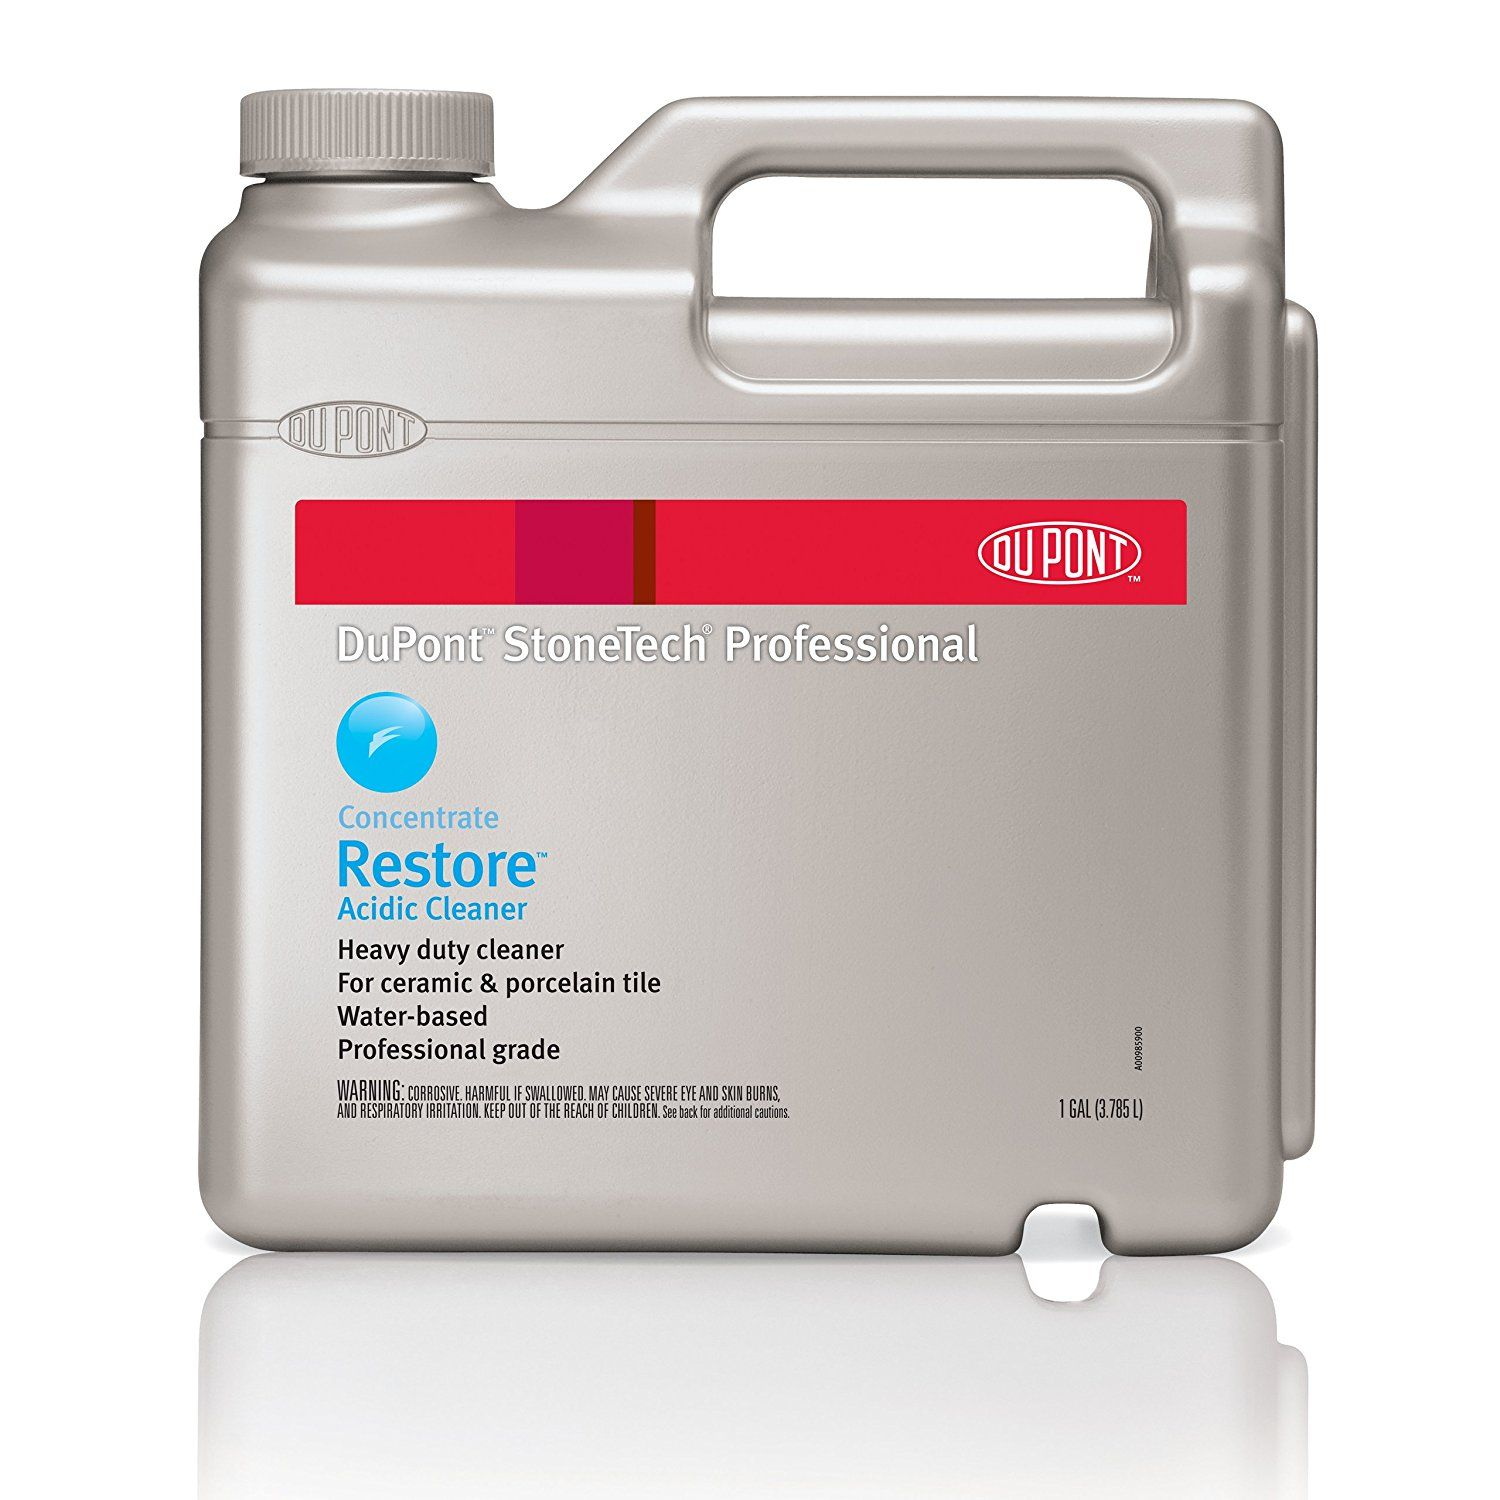 Dupont Stonetech Professional Concentrate Restore Acidic Cleaner 1 Gallon 3 785 L Tile Cleaners Grout Cleaner Floor Cleaner